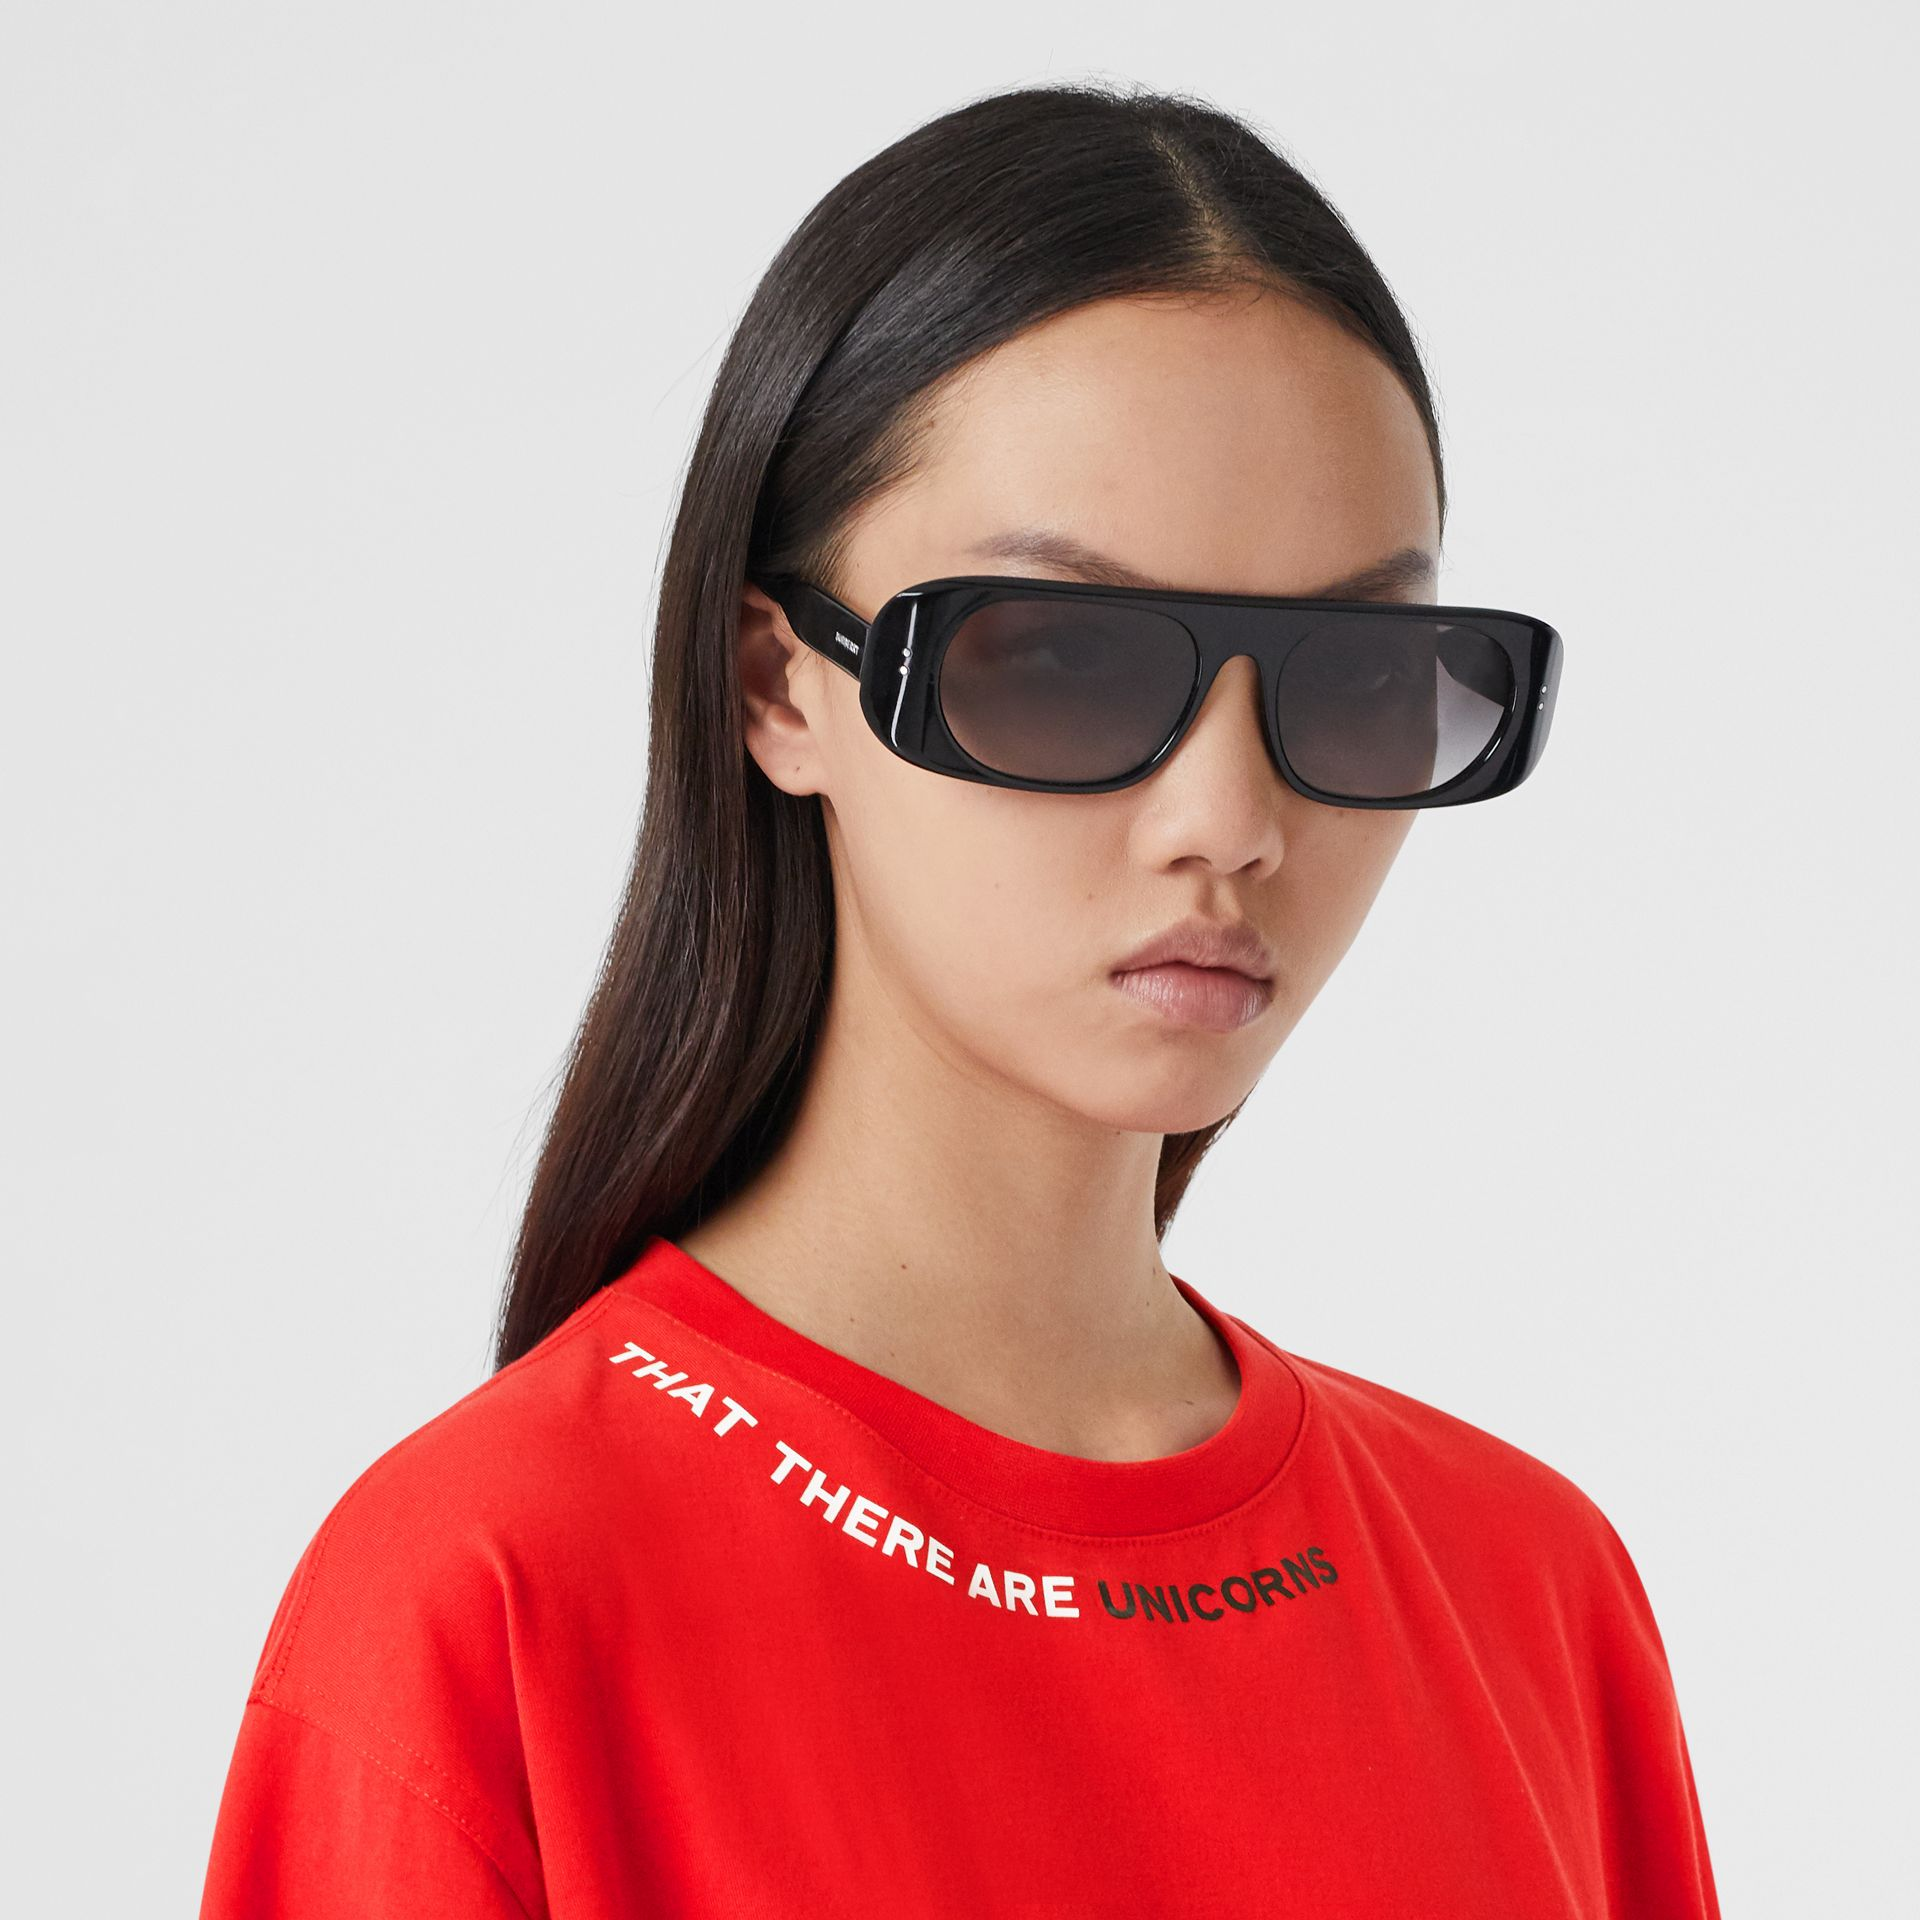 Quote Print Cotton Oversized T-shirt in Bright Red - Women | Burberry - gallery image 1